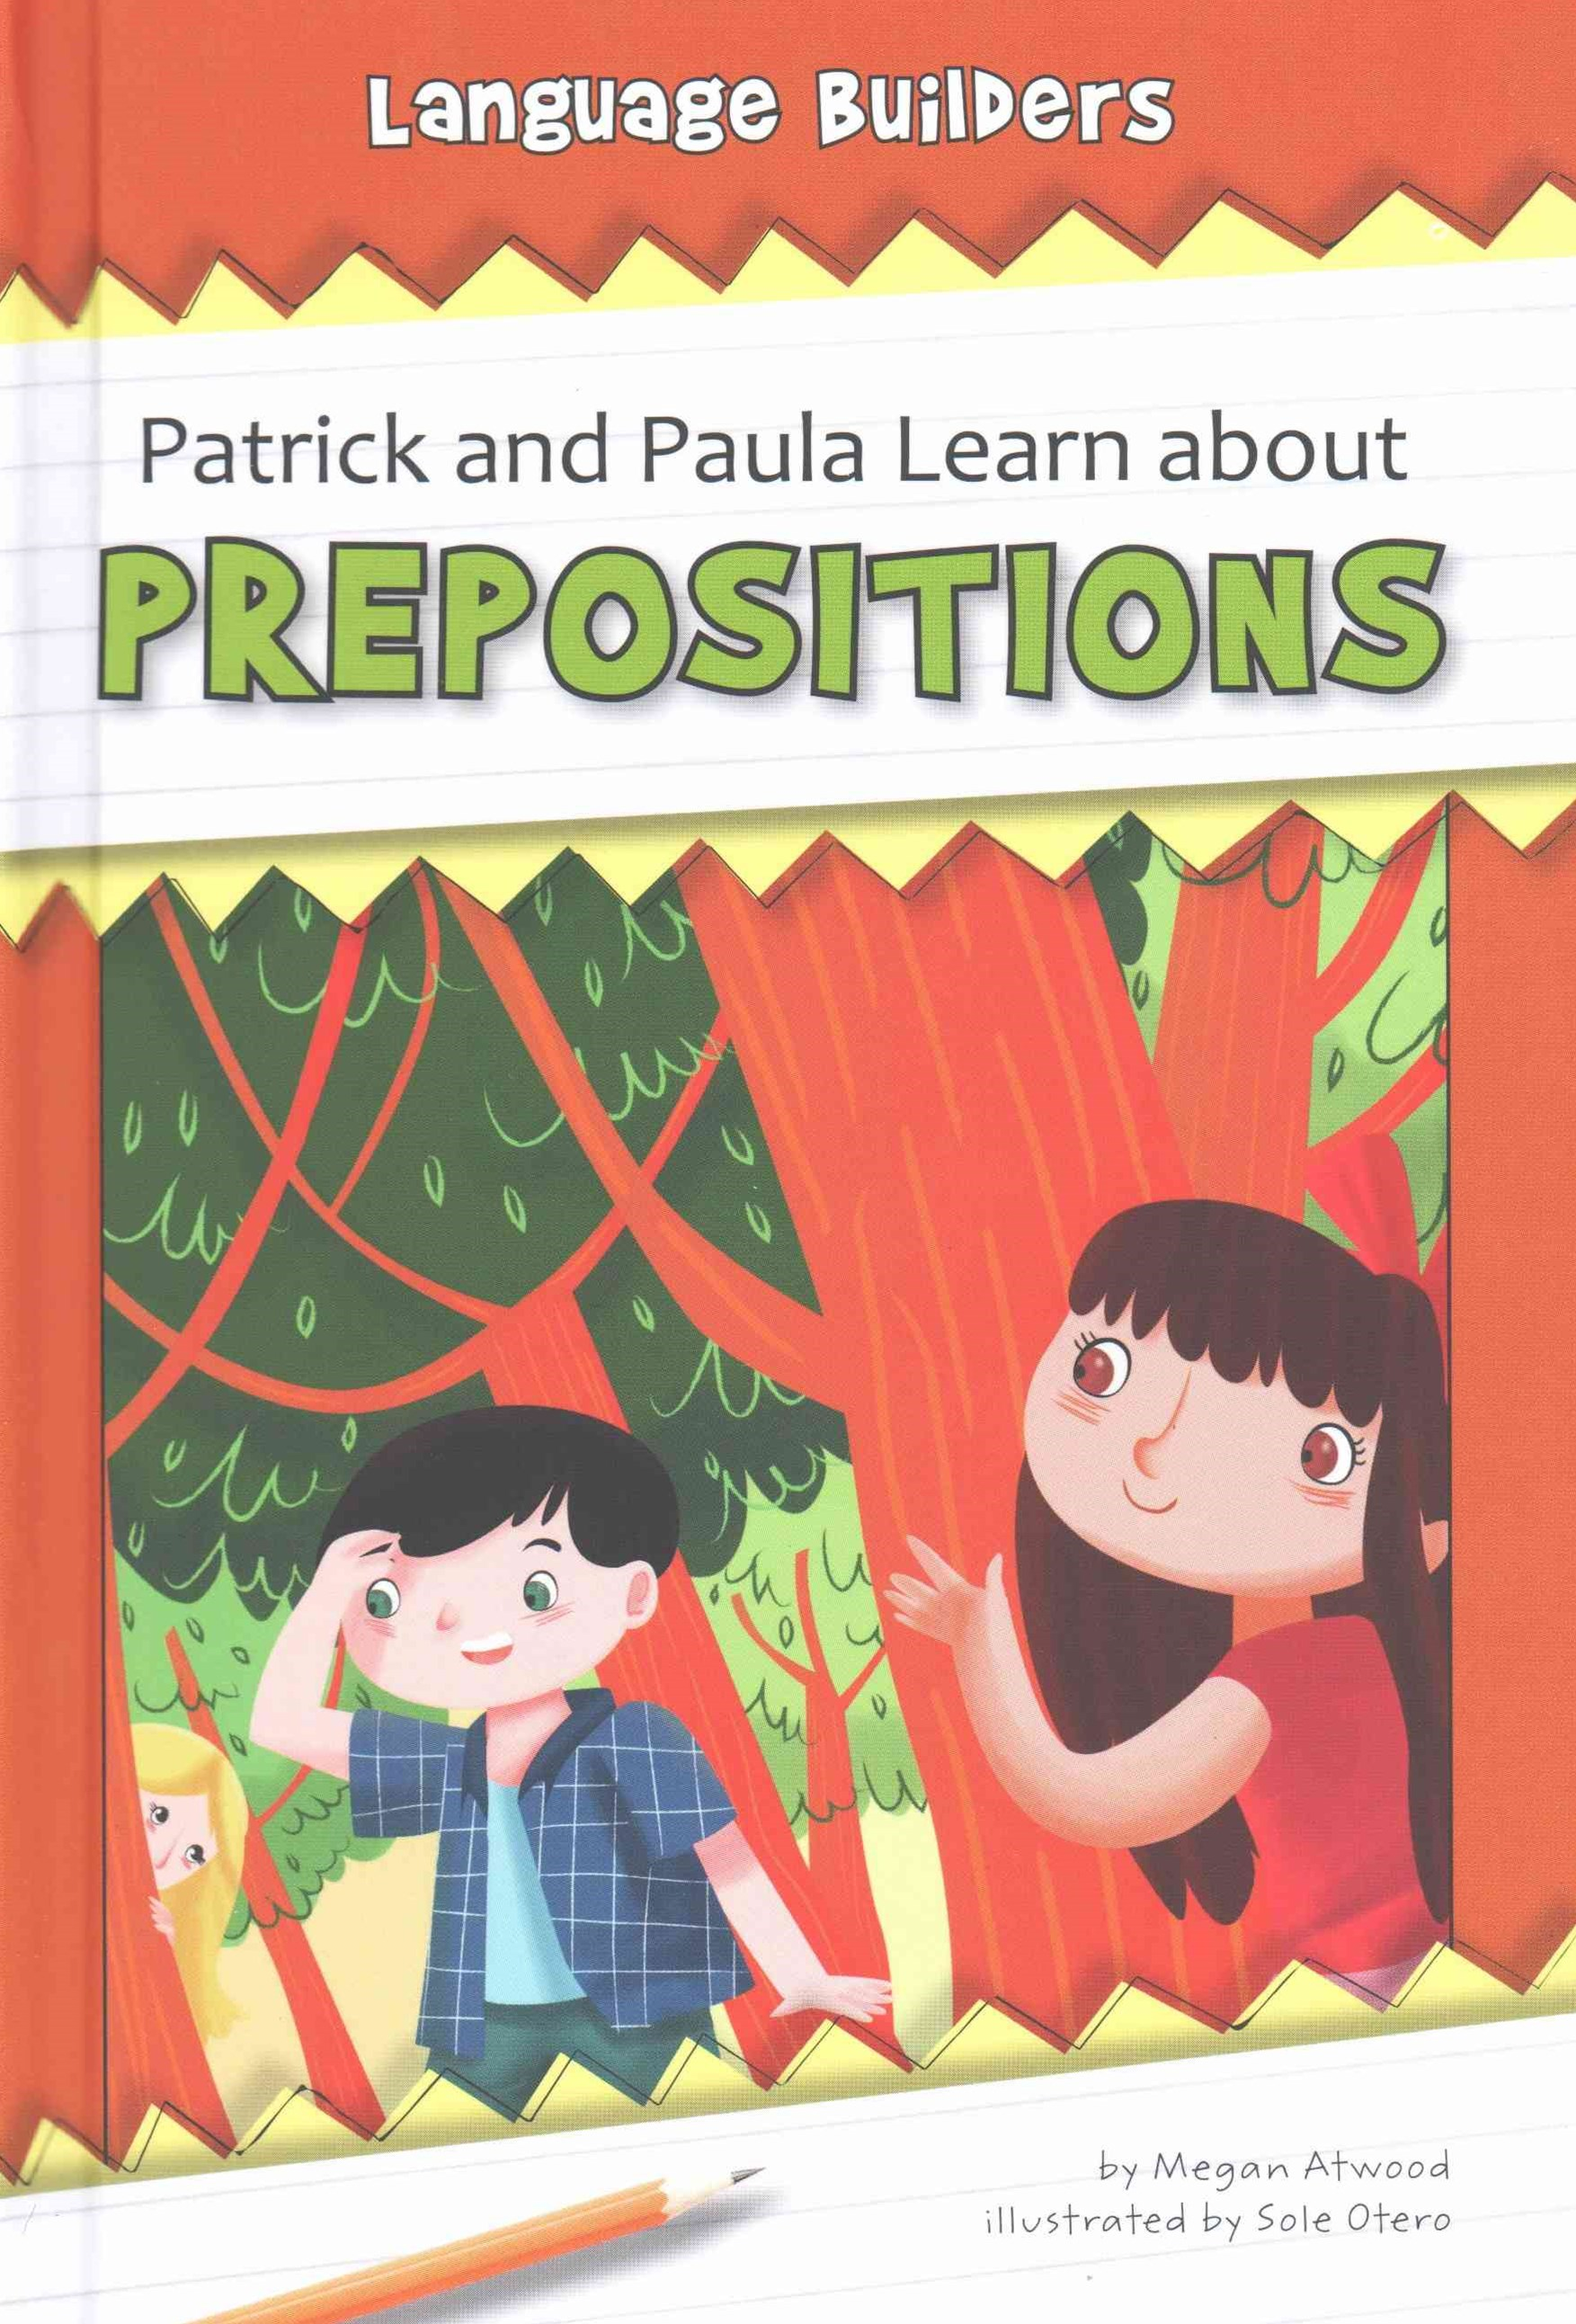 Patrick and Paula Learn about Prepositions